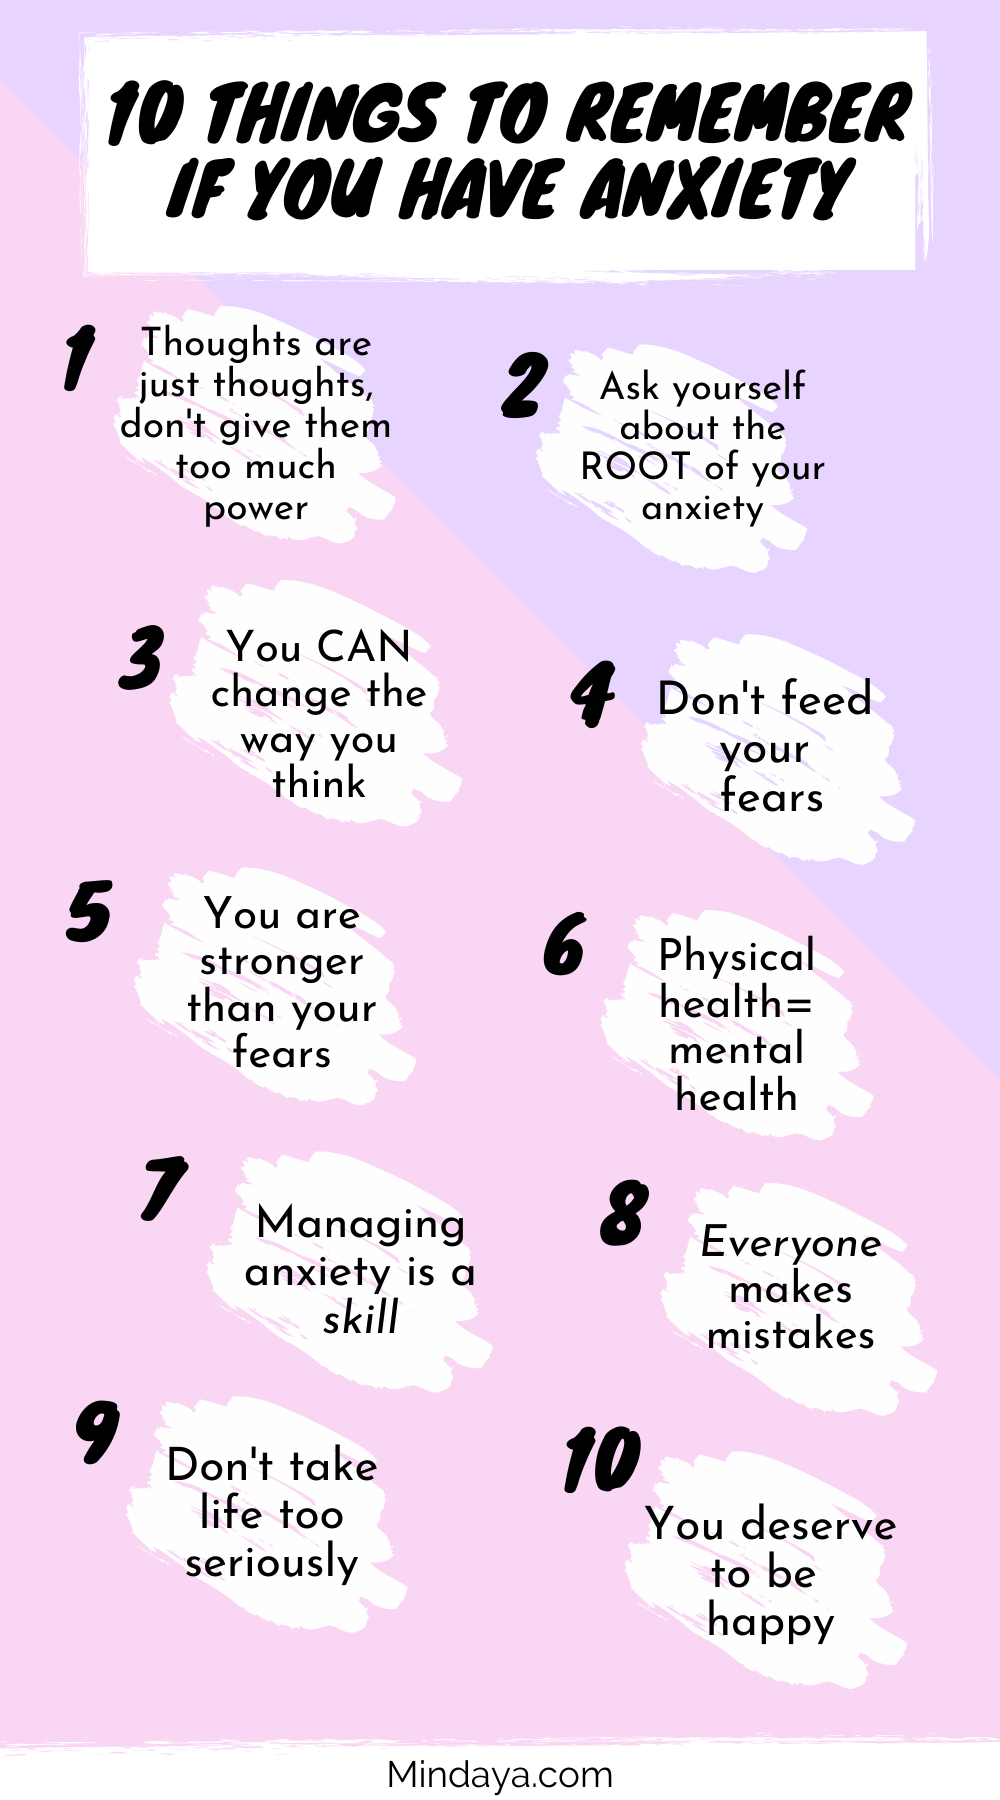 10 Things to Remember if You Have Anxiety | Mindaya